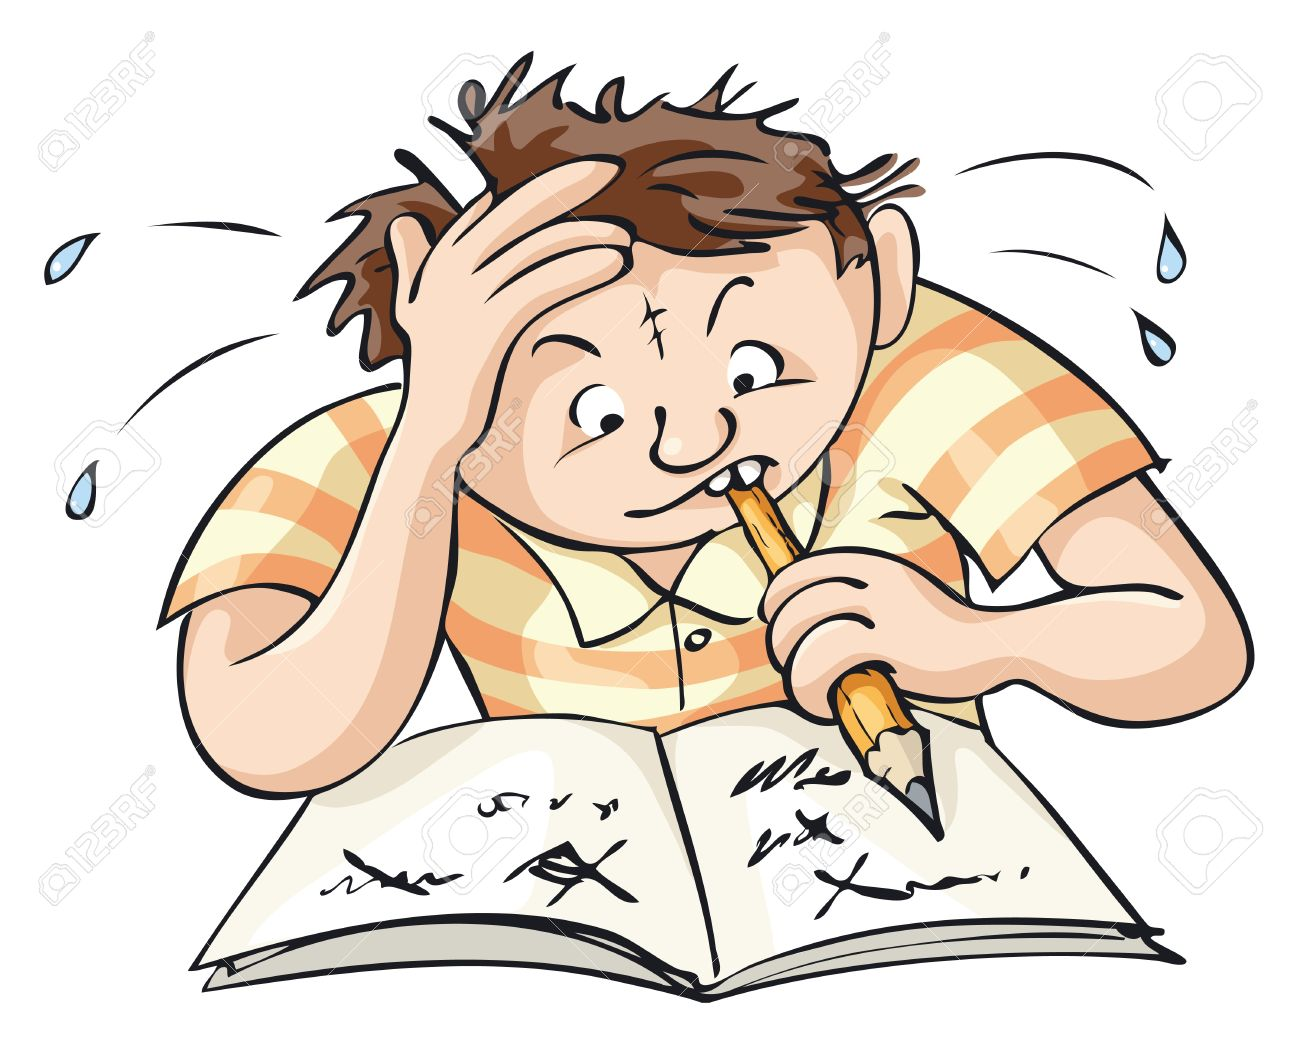 Working hard in school clipart png free stock Working Hard At School Clipart png free stock